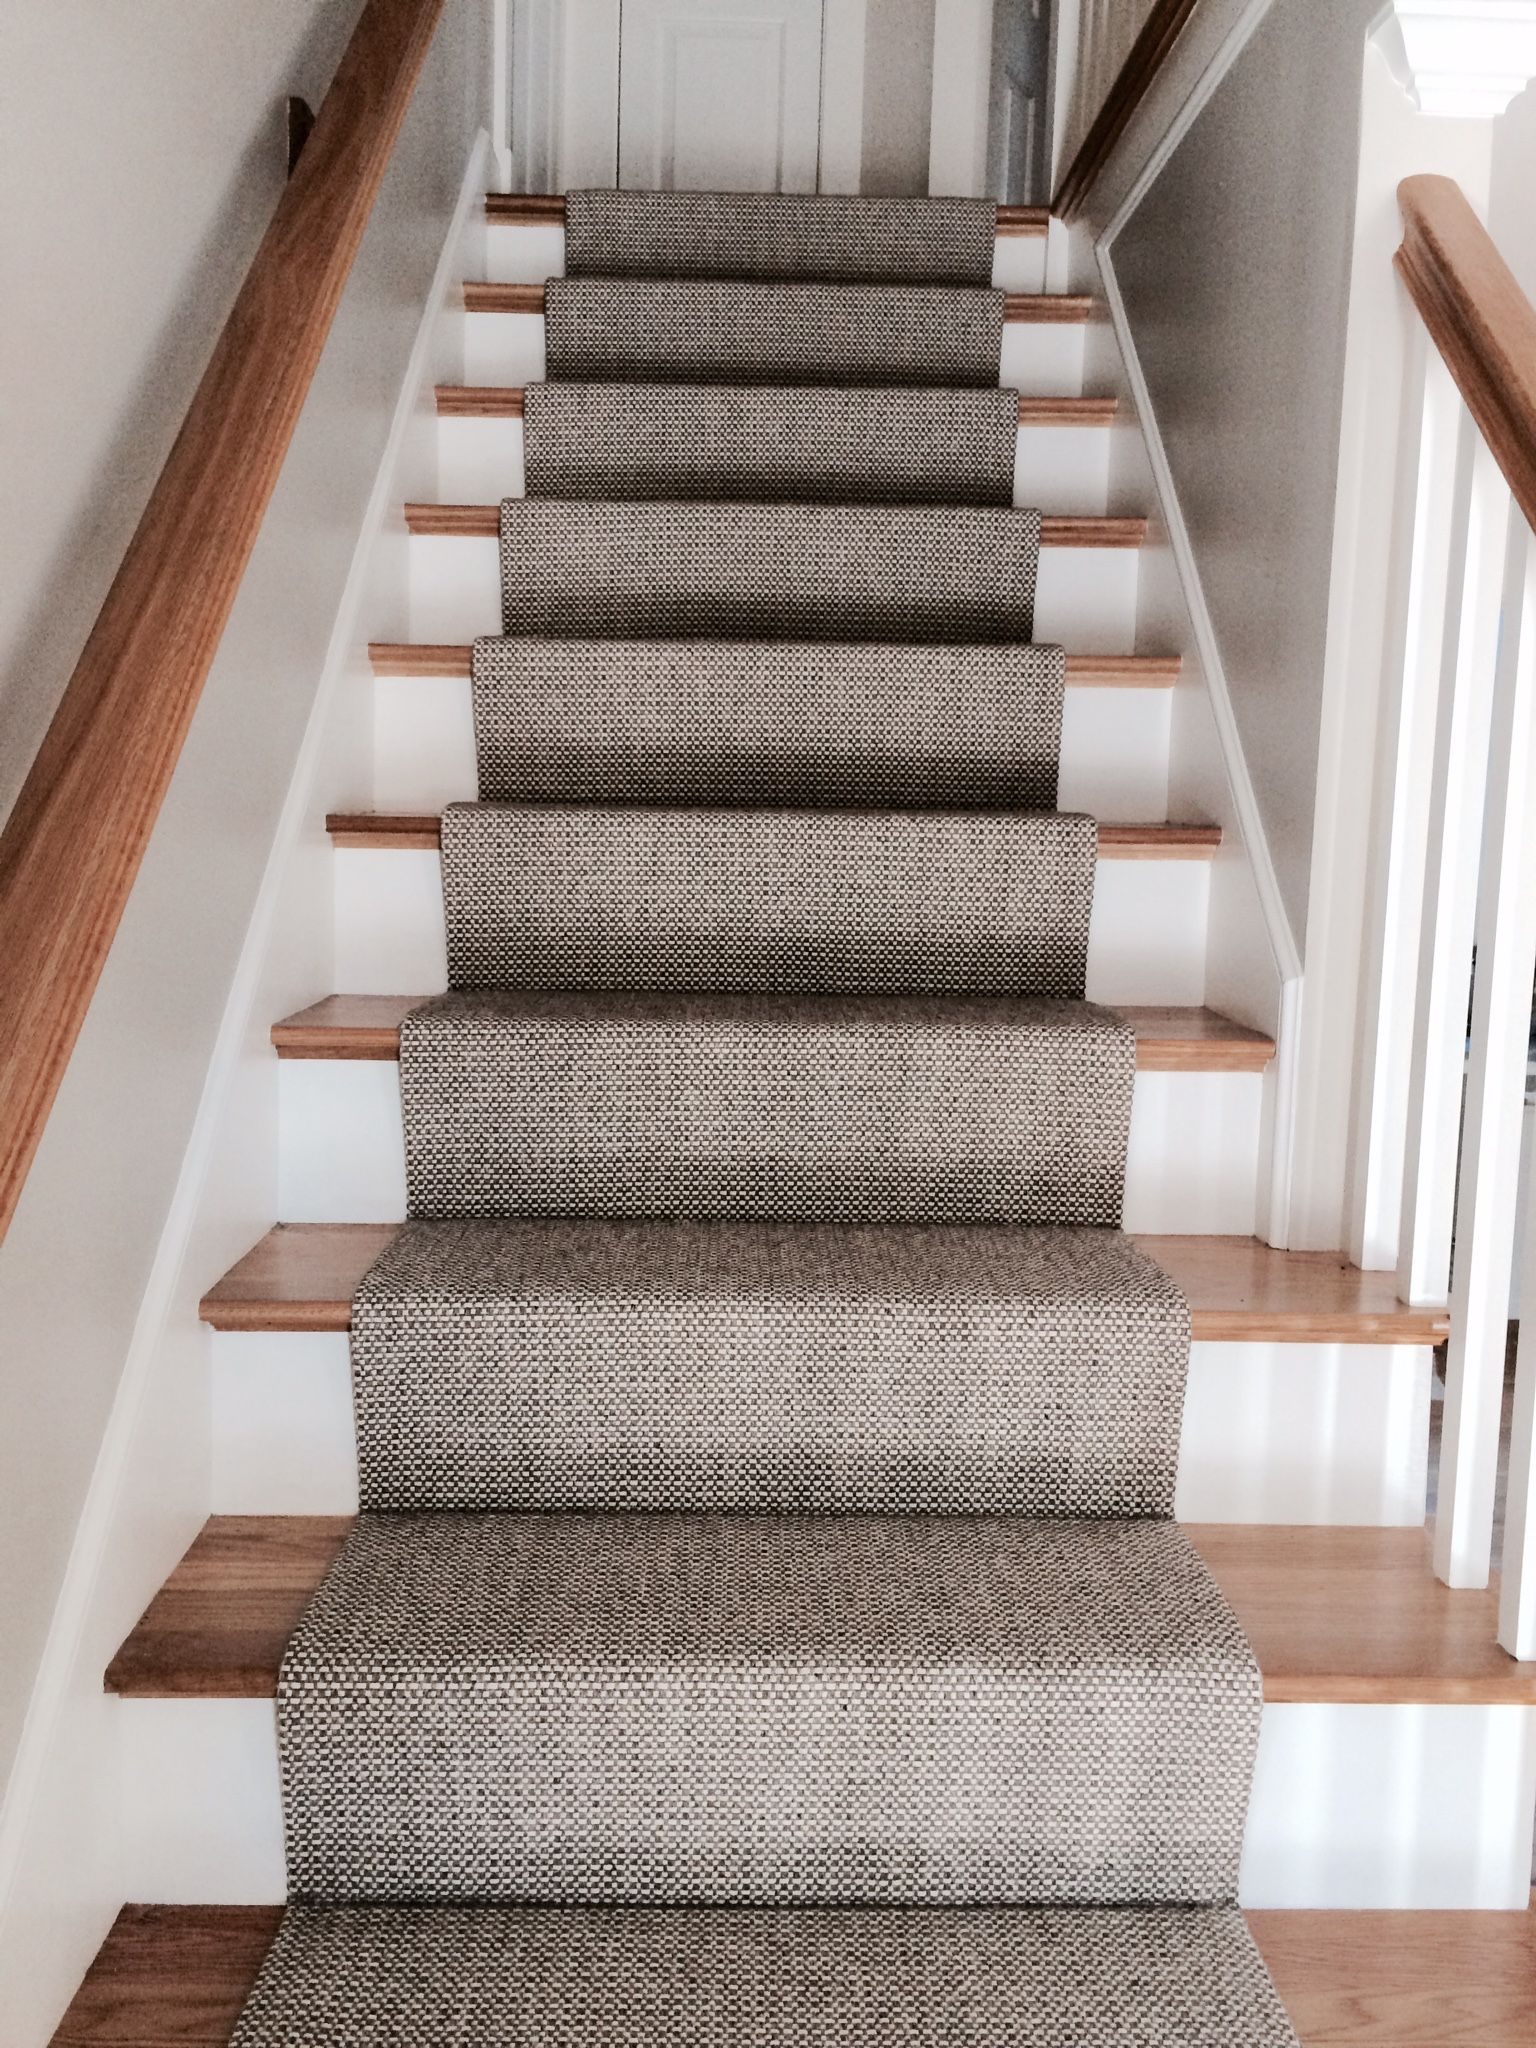 Merida Flat Woven Wool Stair Runner By The Carpet Workroom The   Best Carpet Runners For Stairs   Bound   Stylish   Mid Century   Hollywood Style   Classic